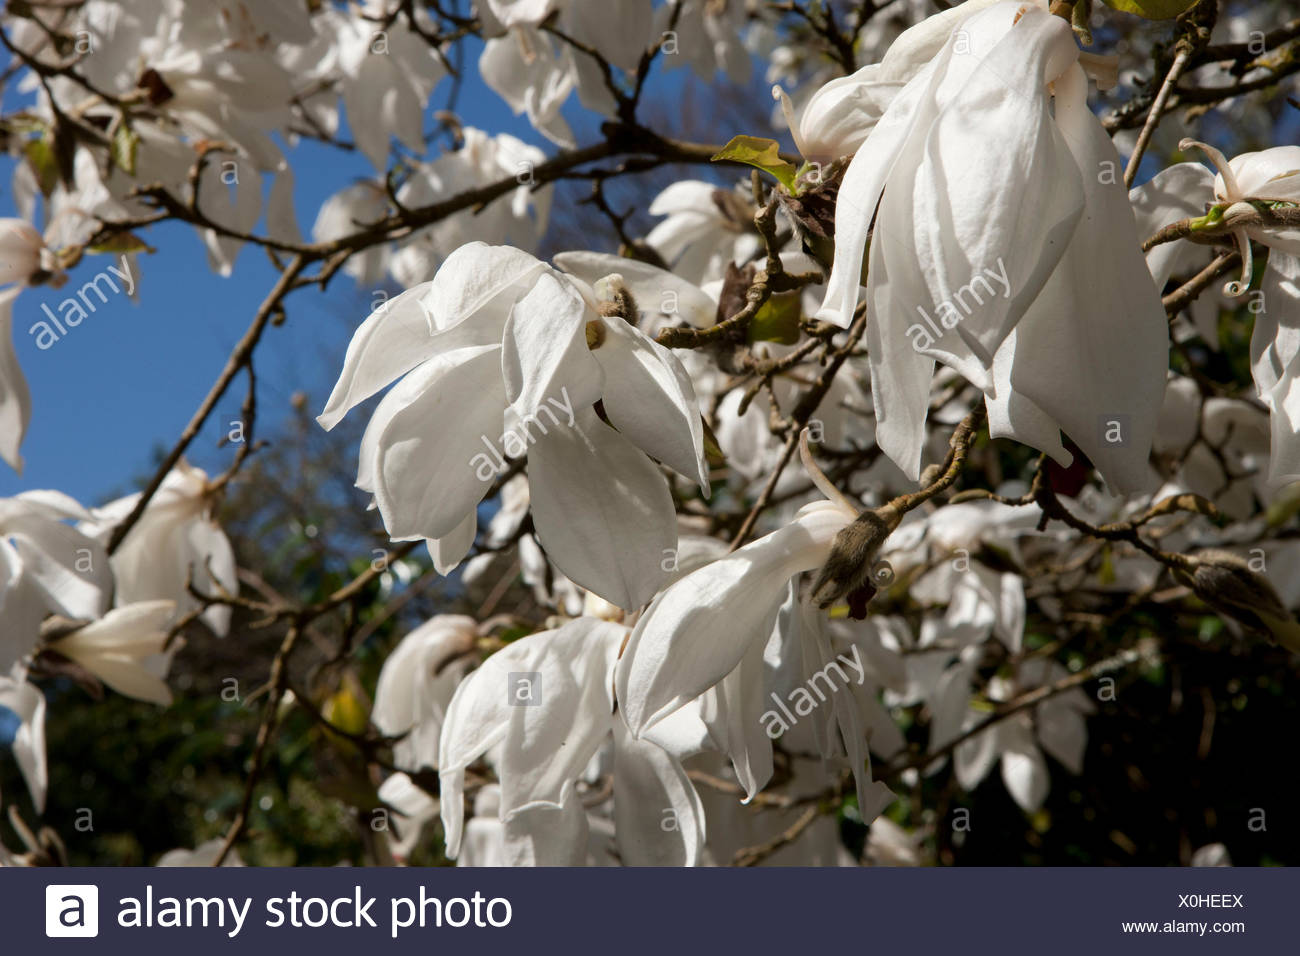 Large white flowers of magnolia david clulow tree at pinetum park large white flowers of magnolia david clulow tree at pinetum park st austell cornwall on a spring day mightylinksfo